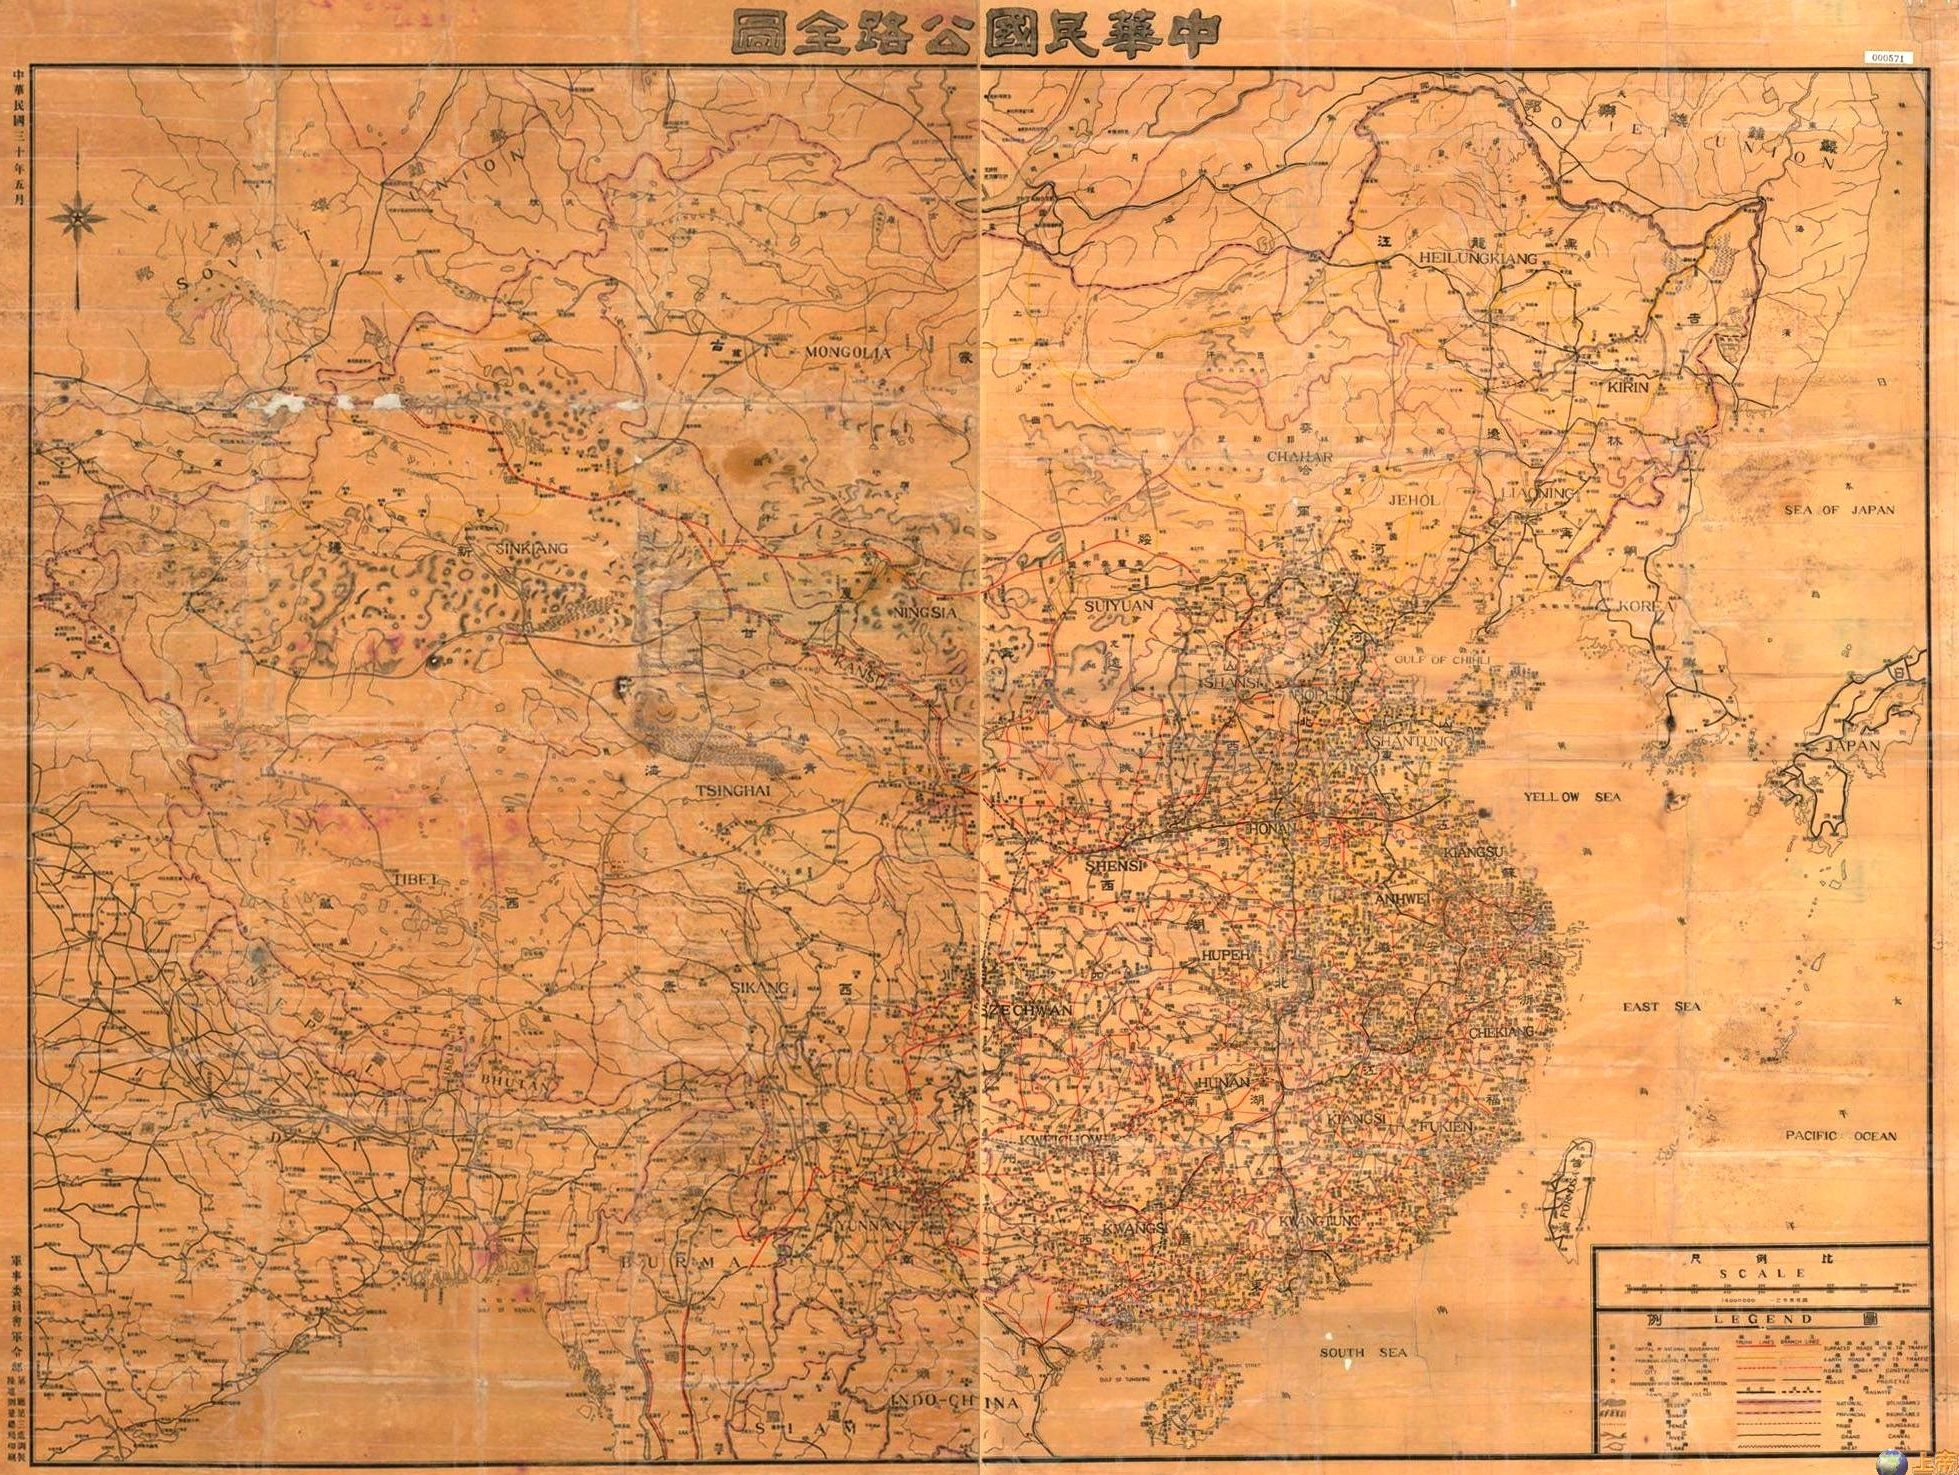 Photo of Zhonghua minguo gonglu quan tu 中華民國公路全圖, Complete Road Map of the Peoples Republic of China